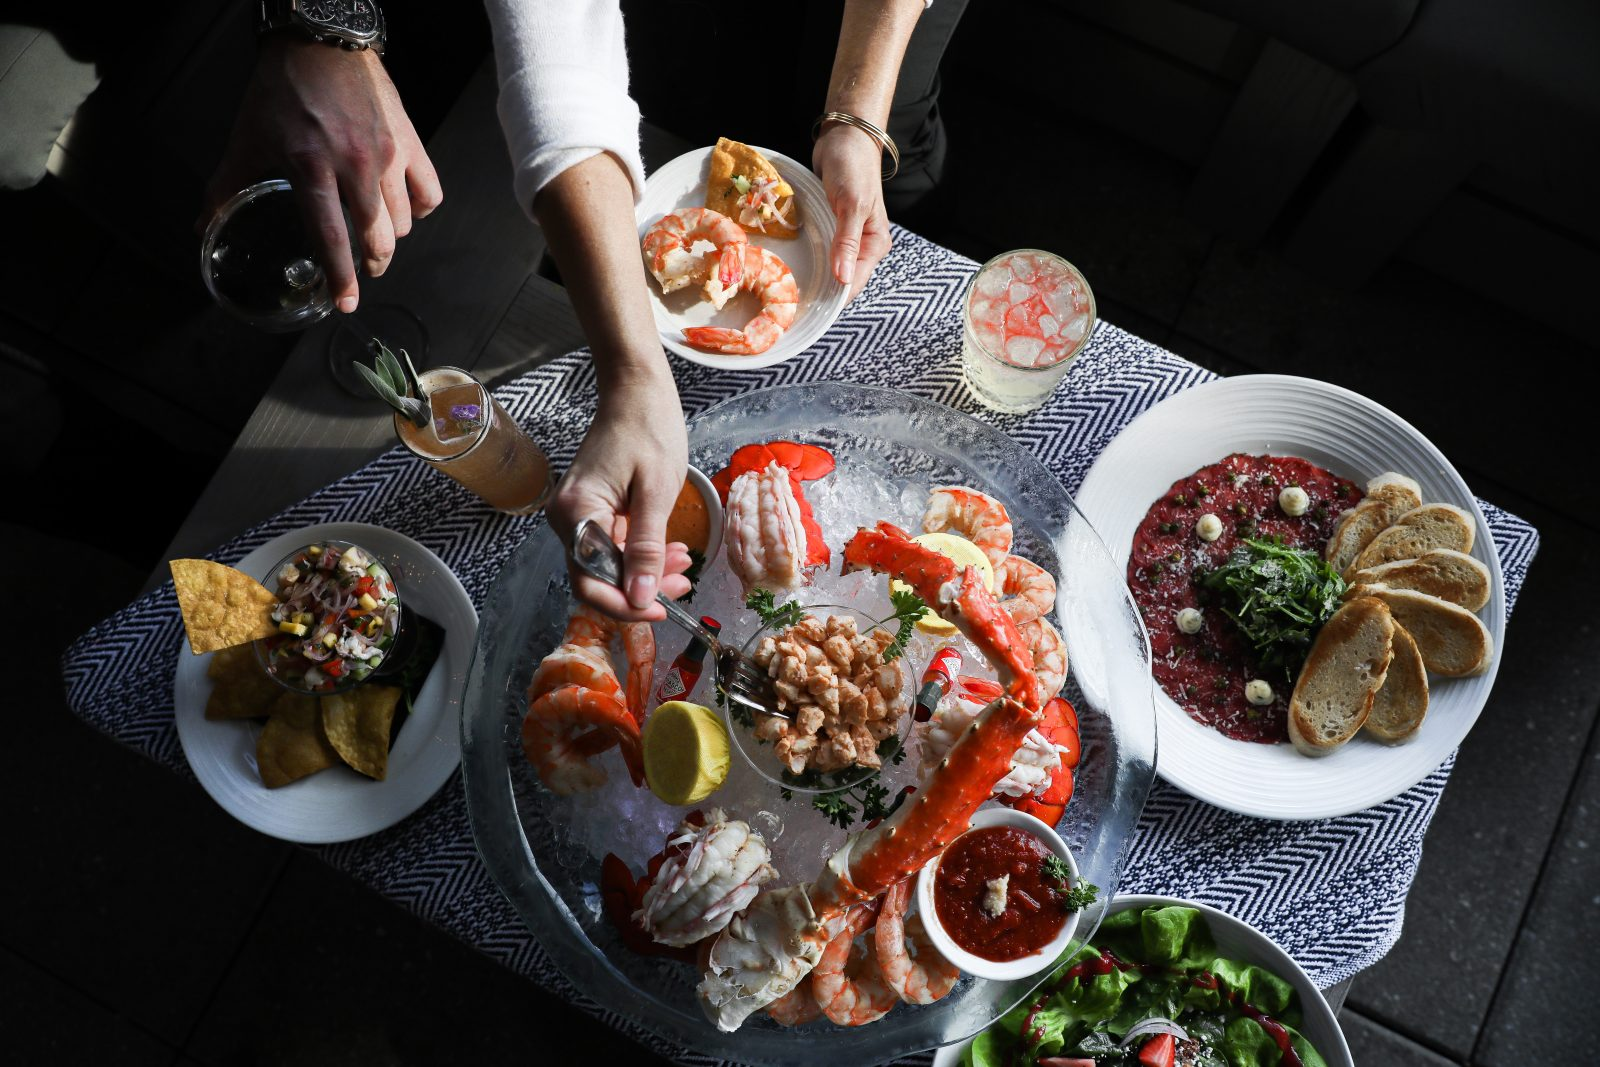 Shrimp platter, crab legs, and drinks at this patio dining location